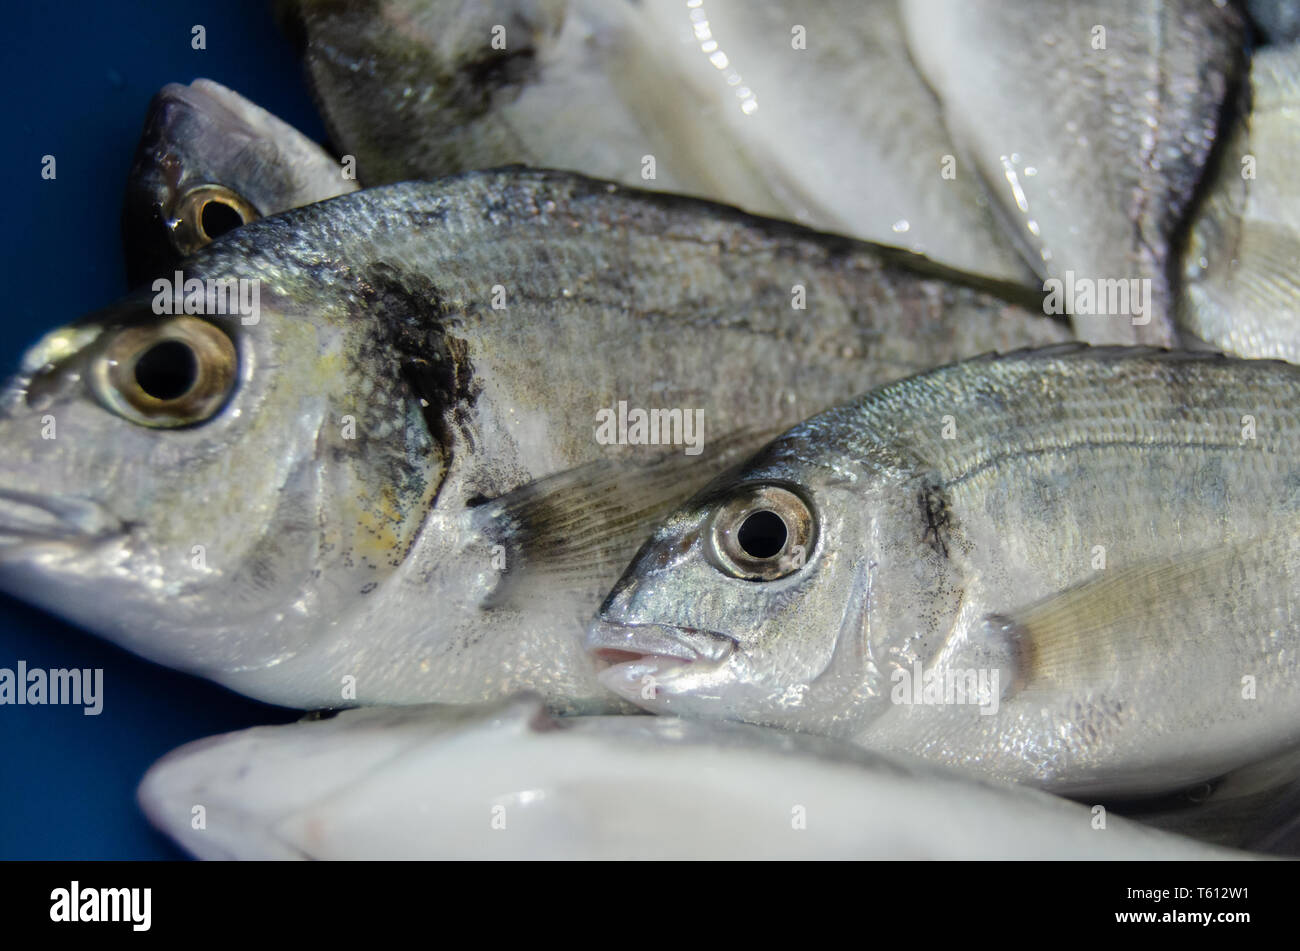 close up shoot of small freash fish just taken from the sea - Stock Image